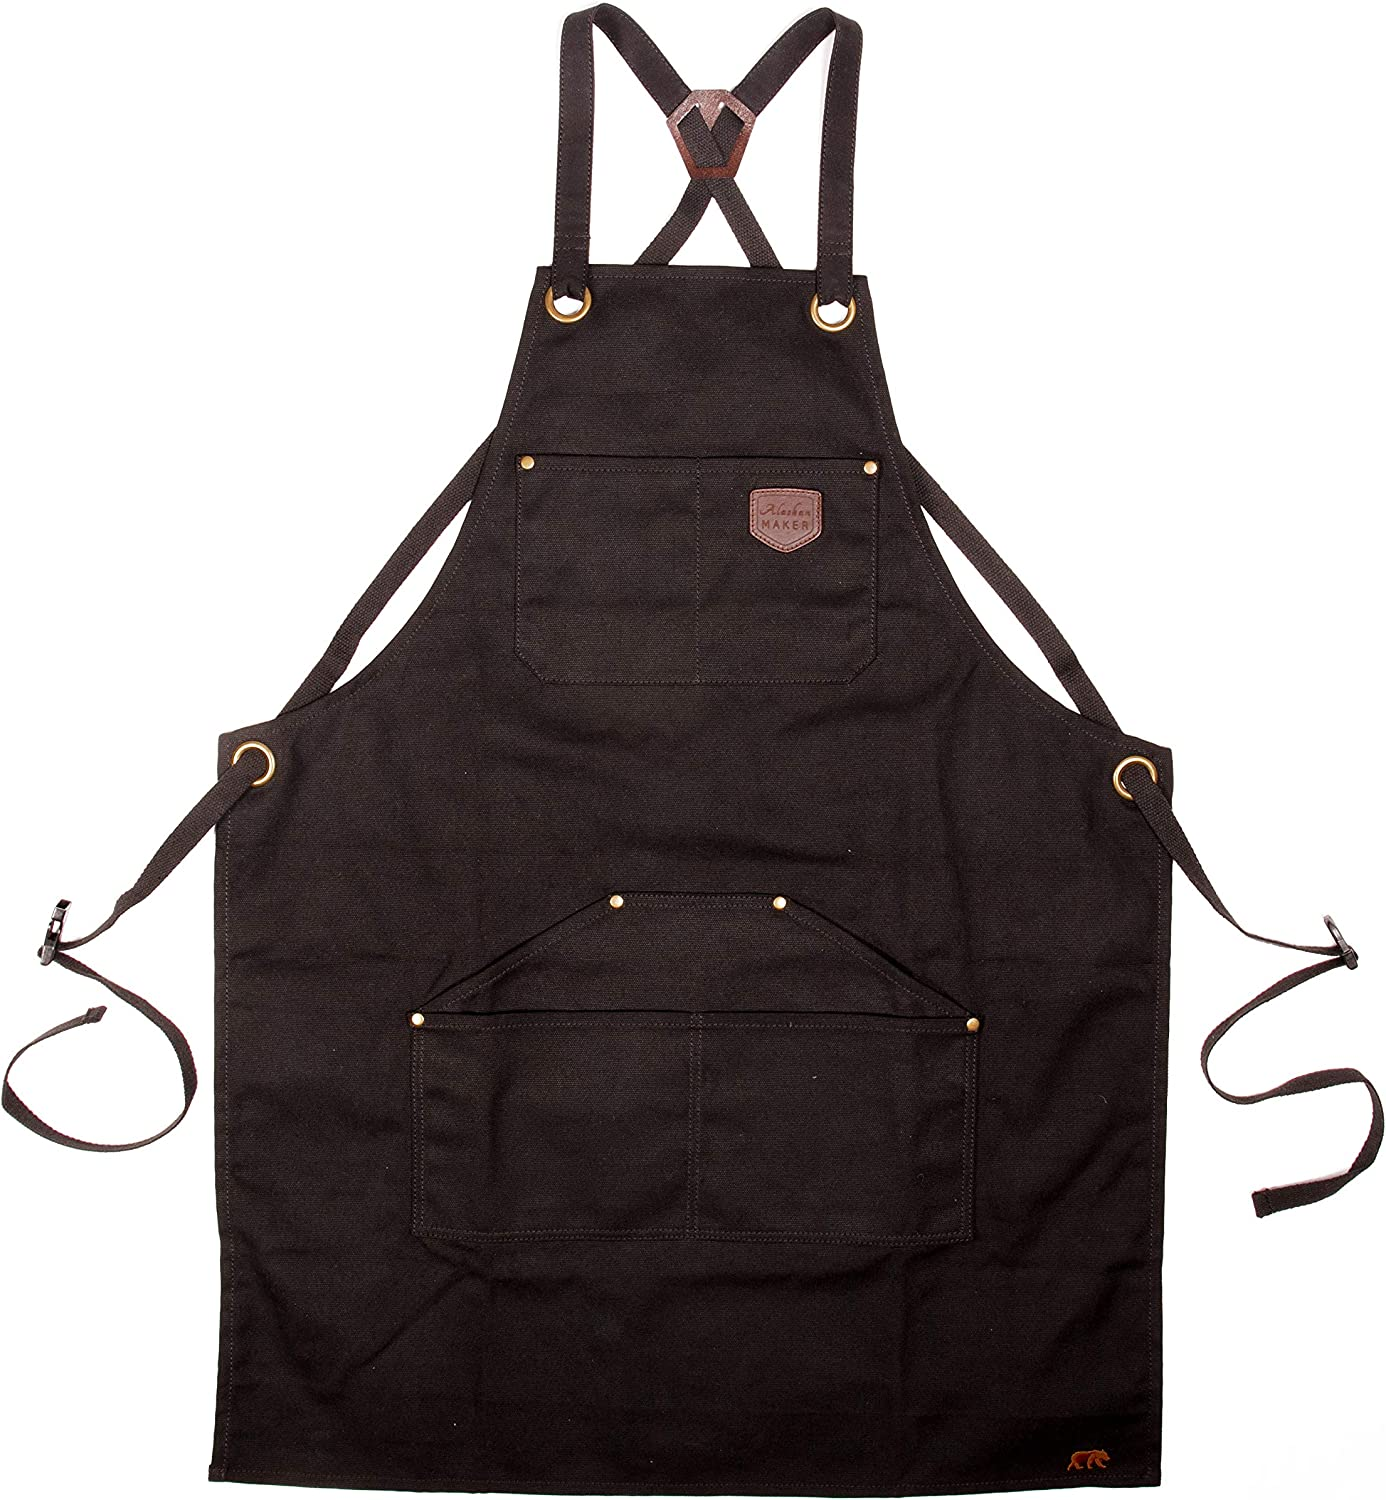 Kitchen Cross Strap Fasteners Black Universal Size Gardening and Barbecue Alaskan MAKER No.515 Coated Canvas Apron for DIY Universelle